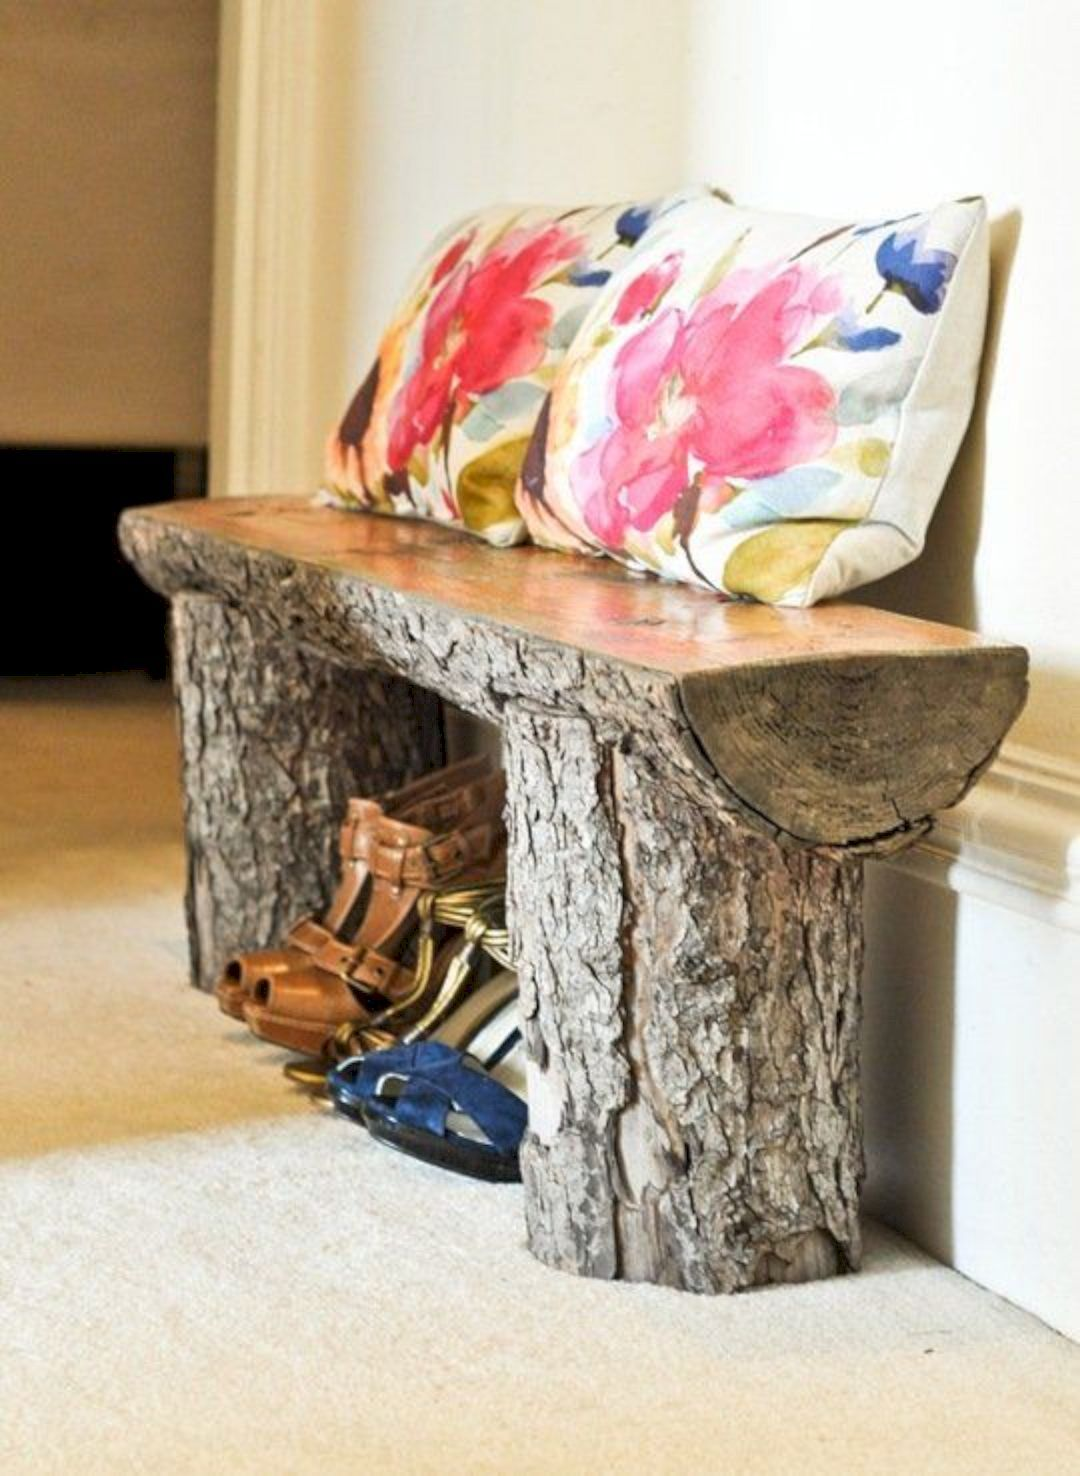 16 Creative Log Furniture Ideas To Own At Home  Https://www.futuristarchitecture.com/32497 16 Creative Log Furniture Ideas  Home.html